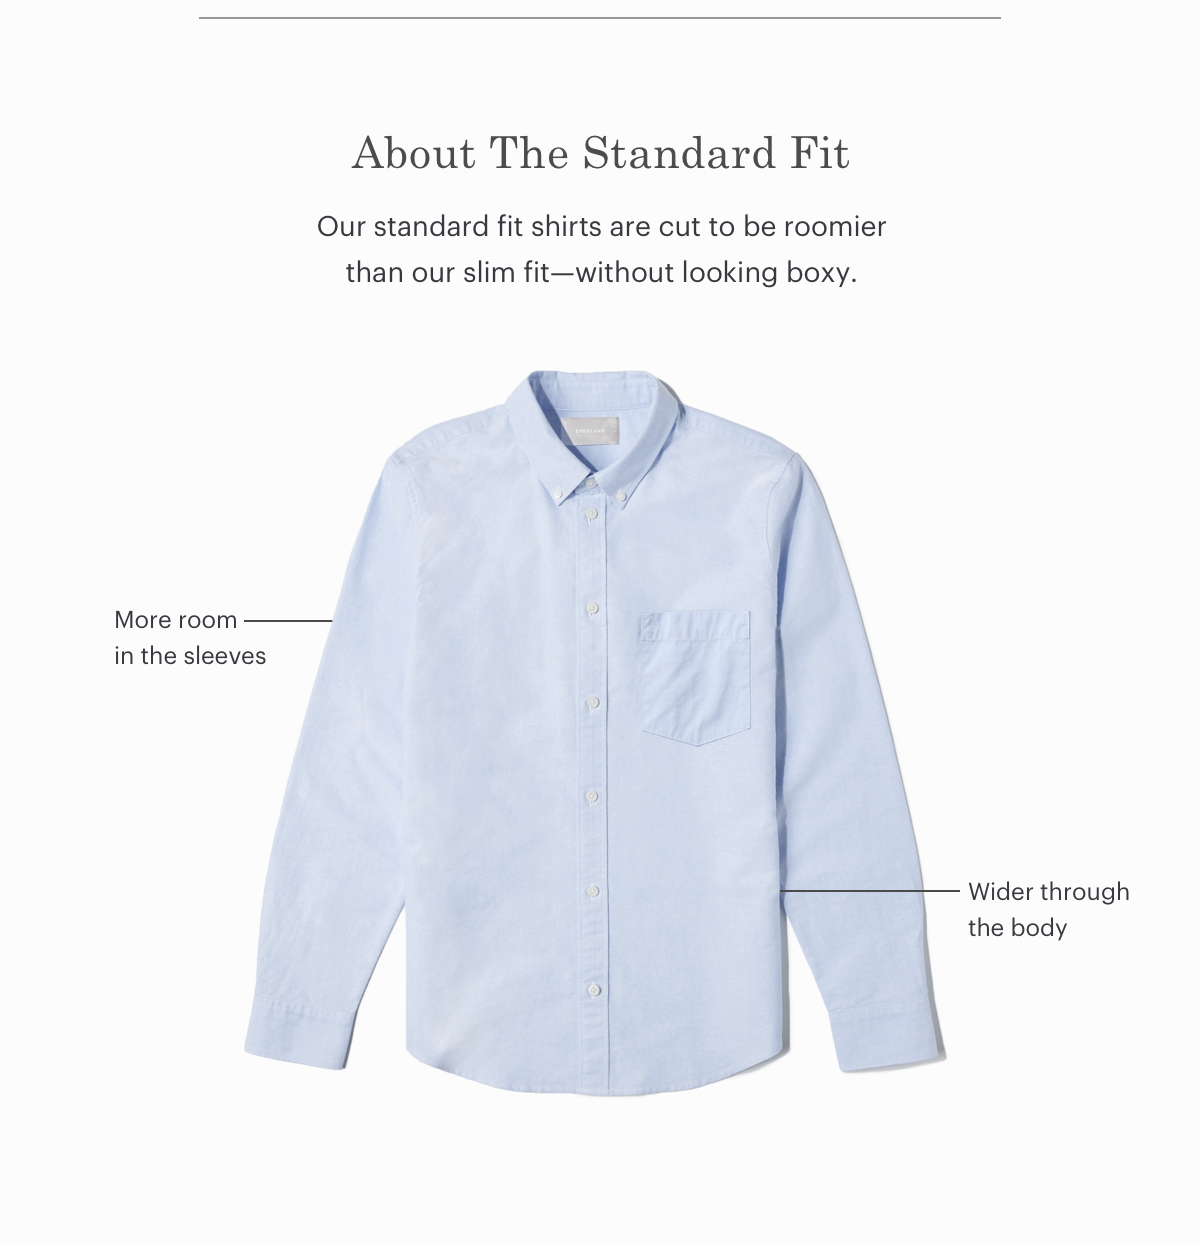 Our standard fit shirts are cut to be roomier than our slim fit-without looking boxy.